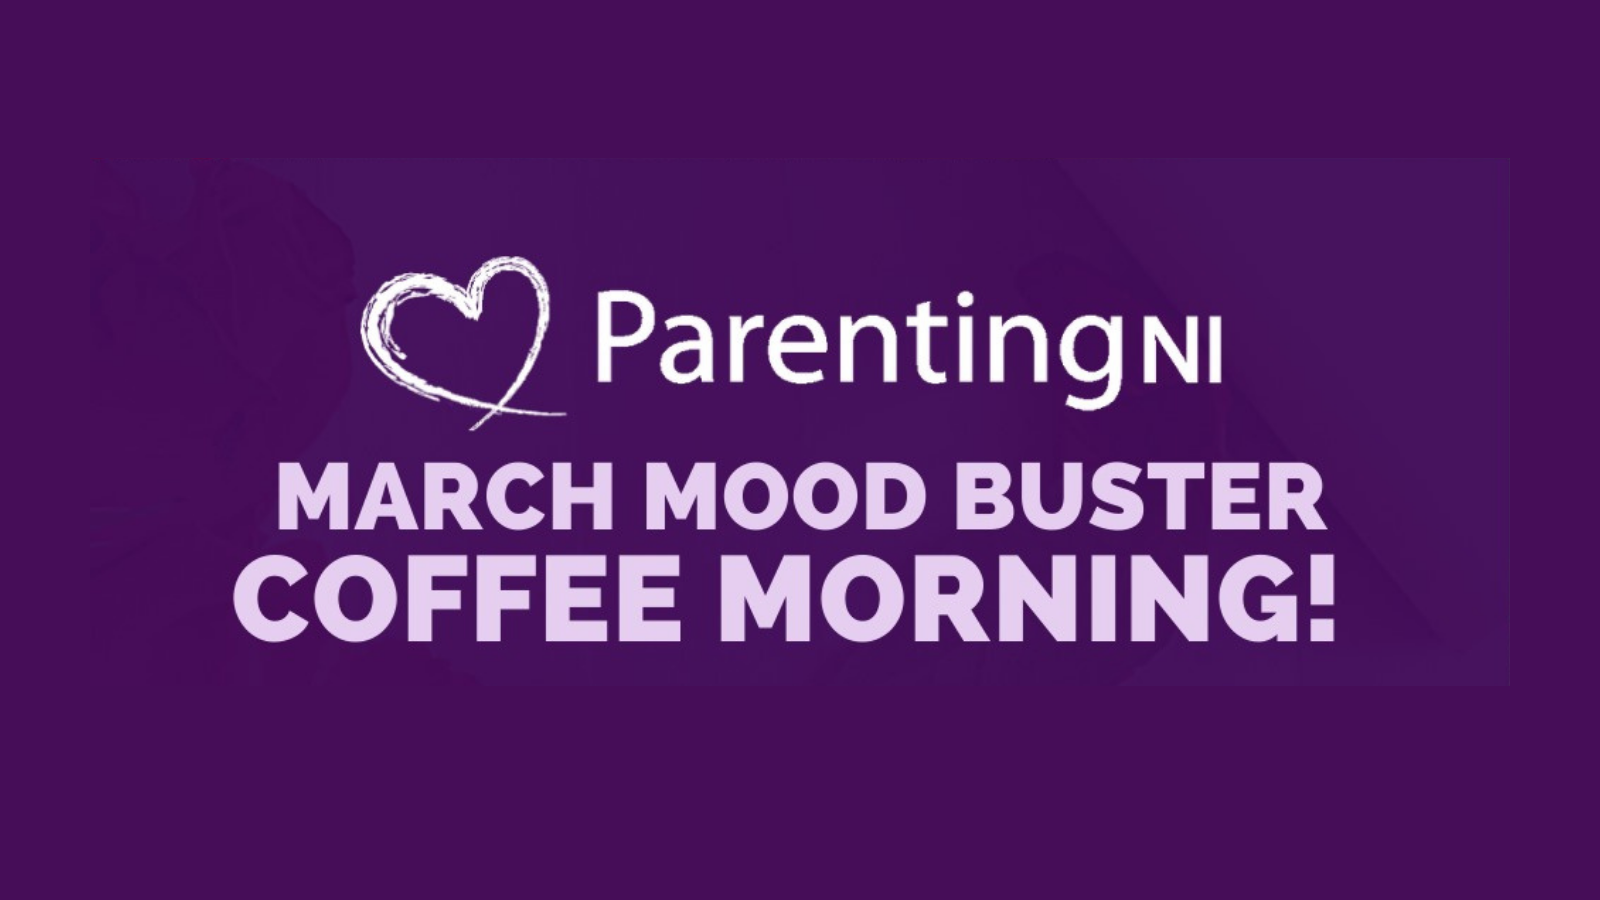 Parenting NI March Mood Buster Coffee Morning